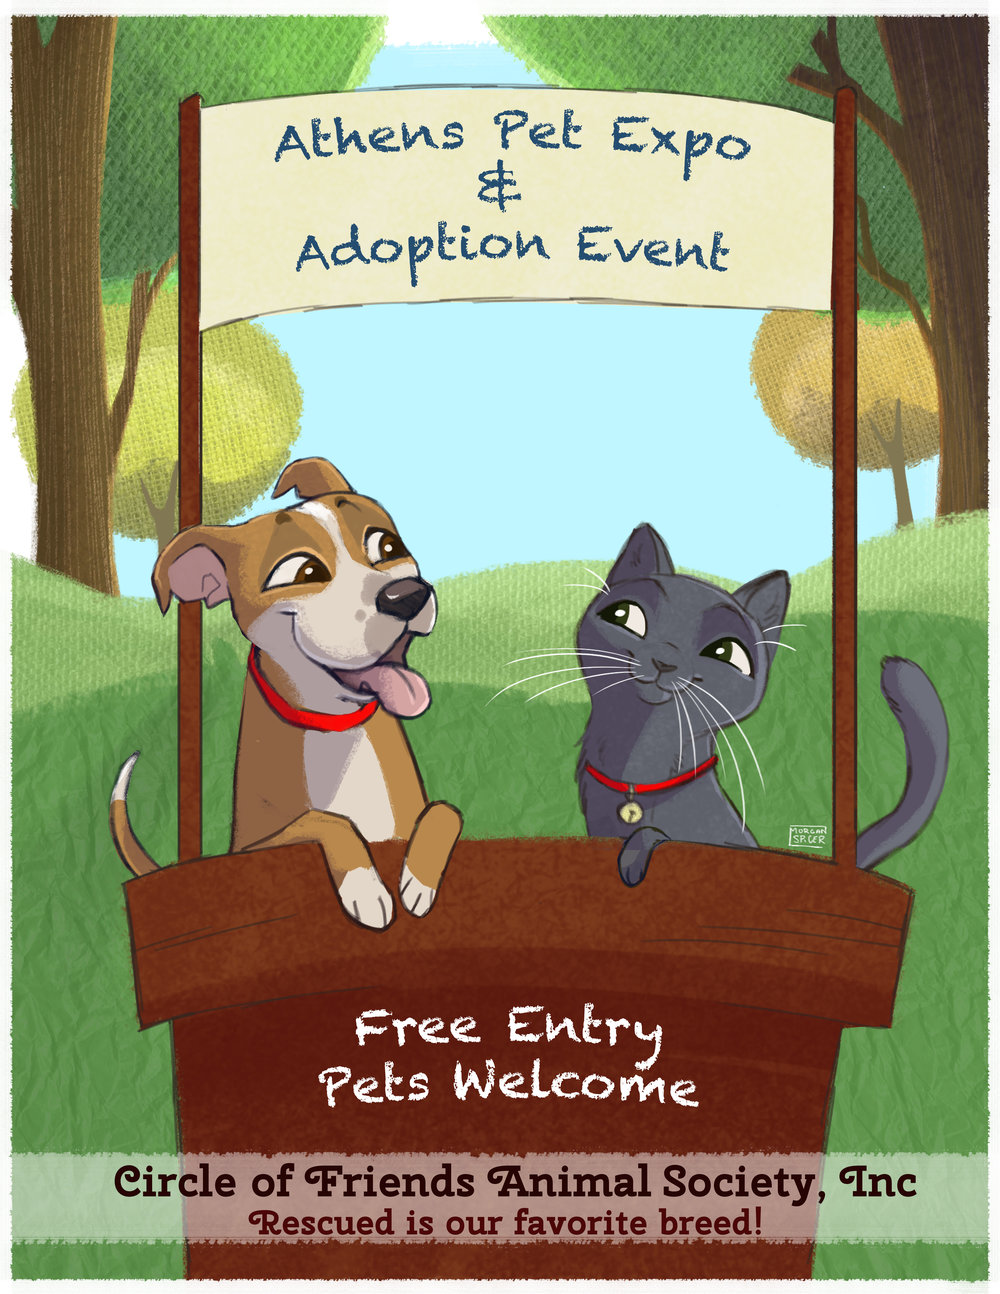 CircleOfFriends_DonationPetExpoAdoptionEvent.jpg